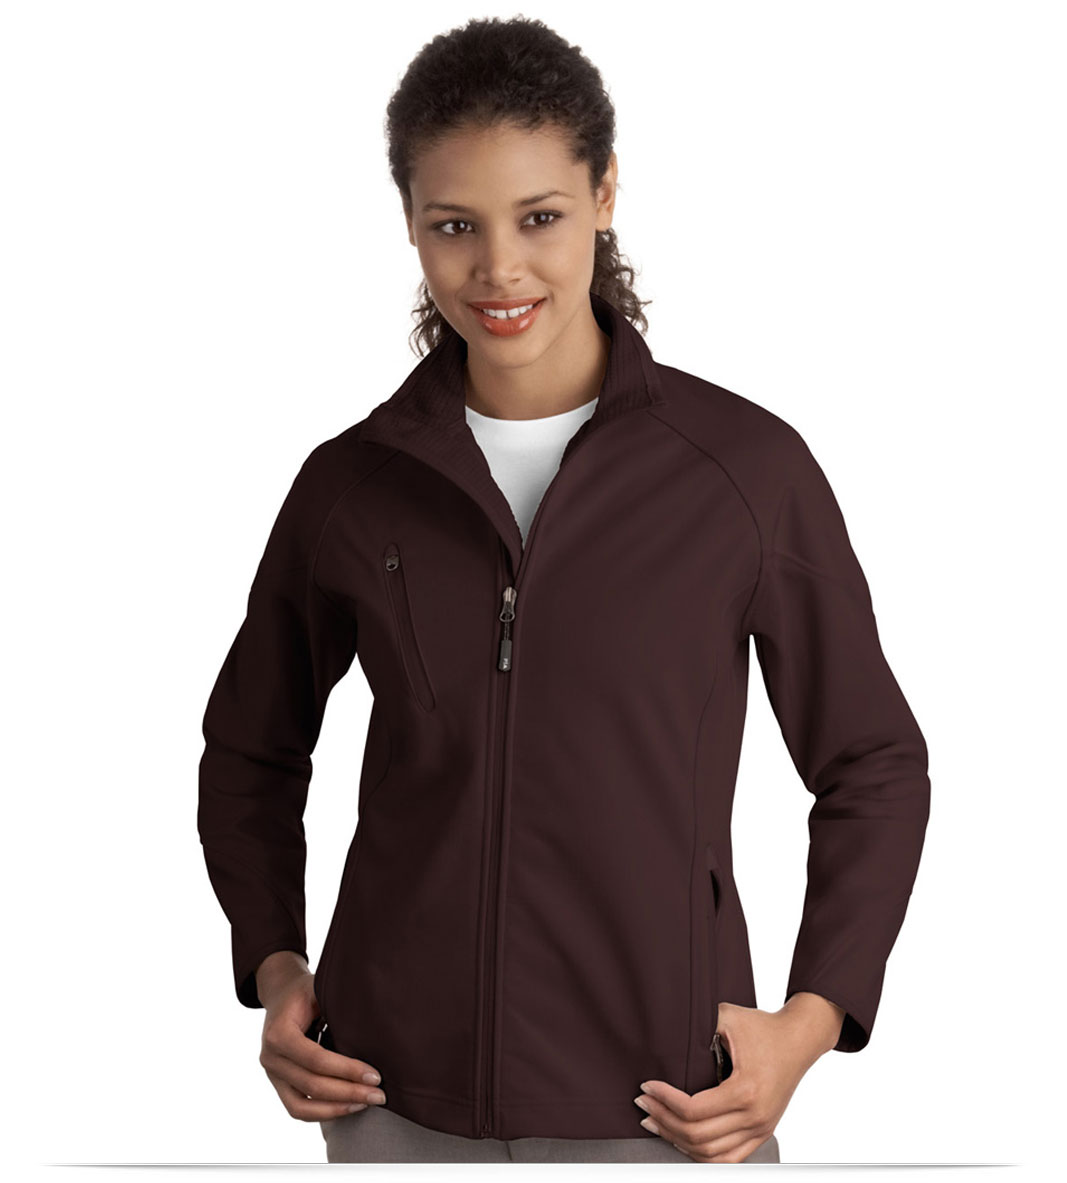 Embroidered Ladies Textured Soft Shell Jacket